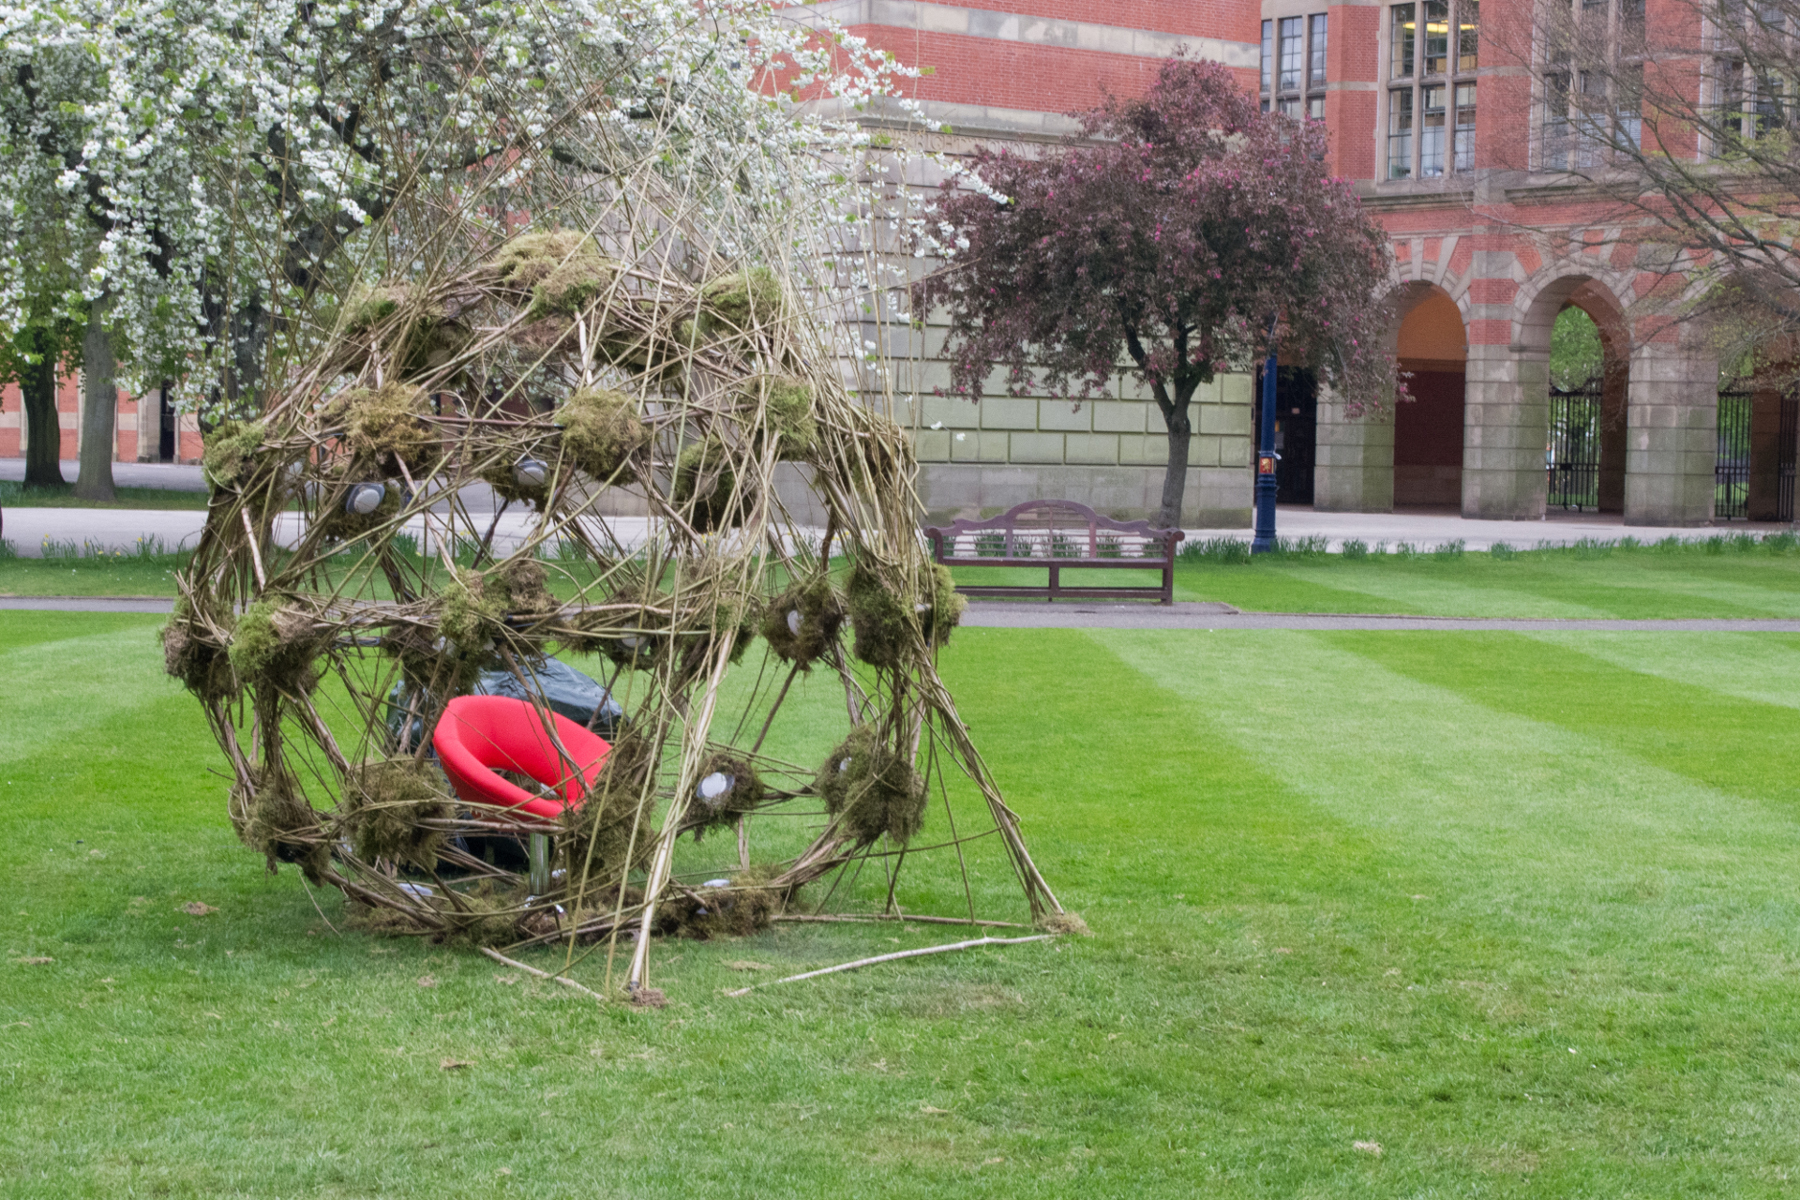 Peter Batchelor + Ian Bilson - Beyond, dome installation on lawn